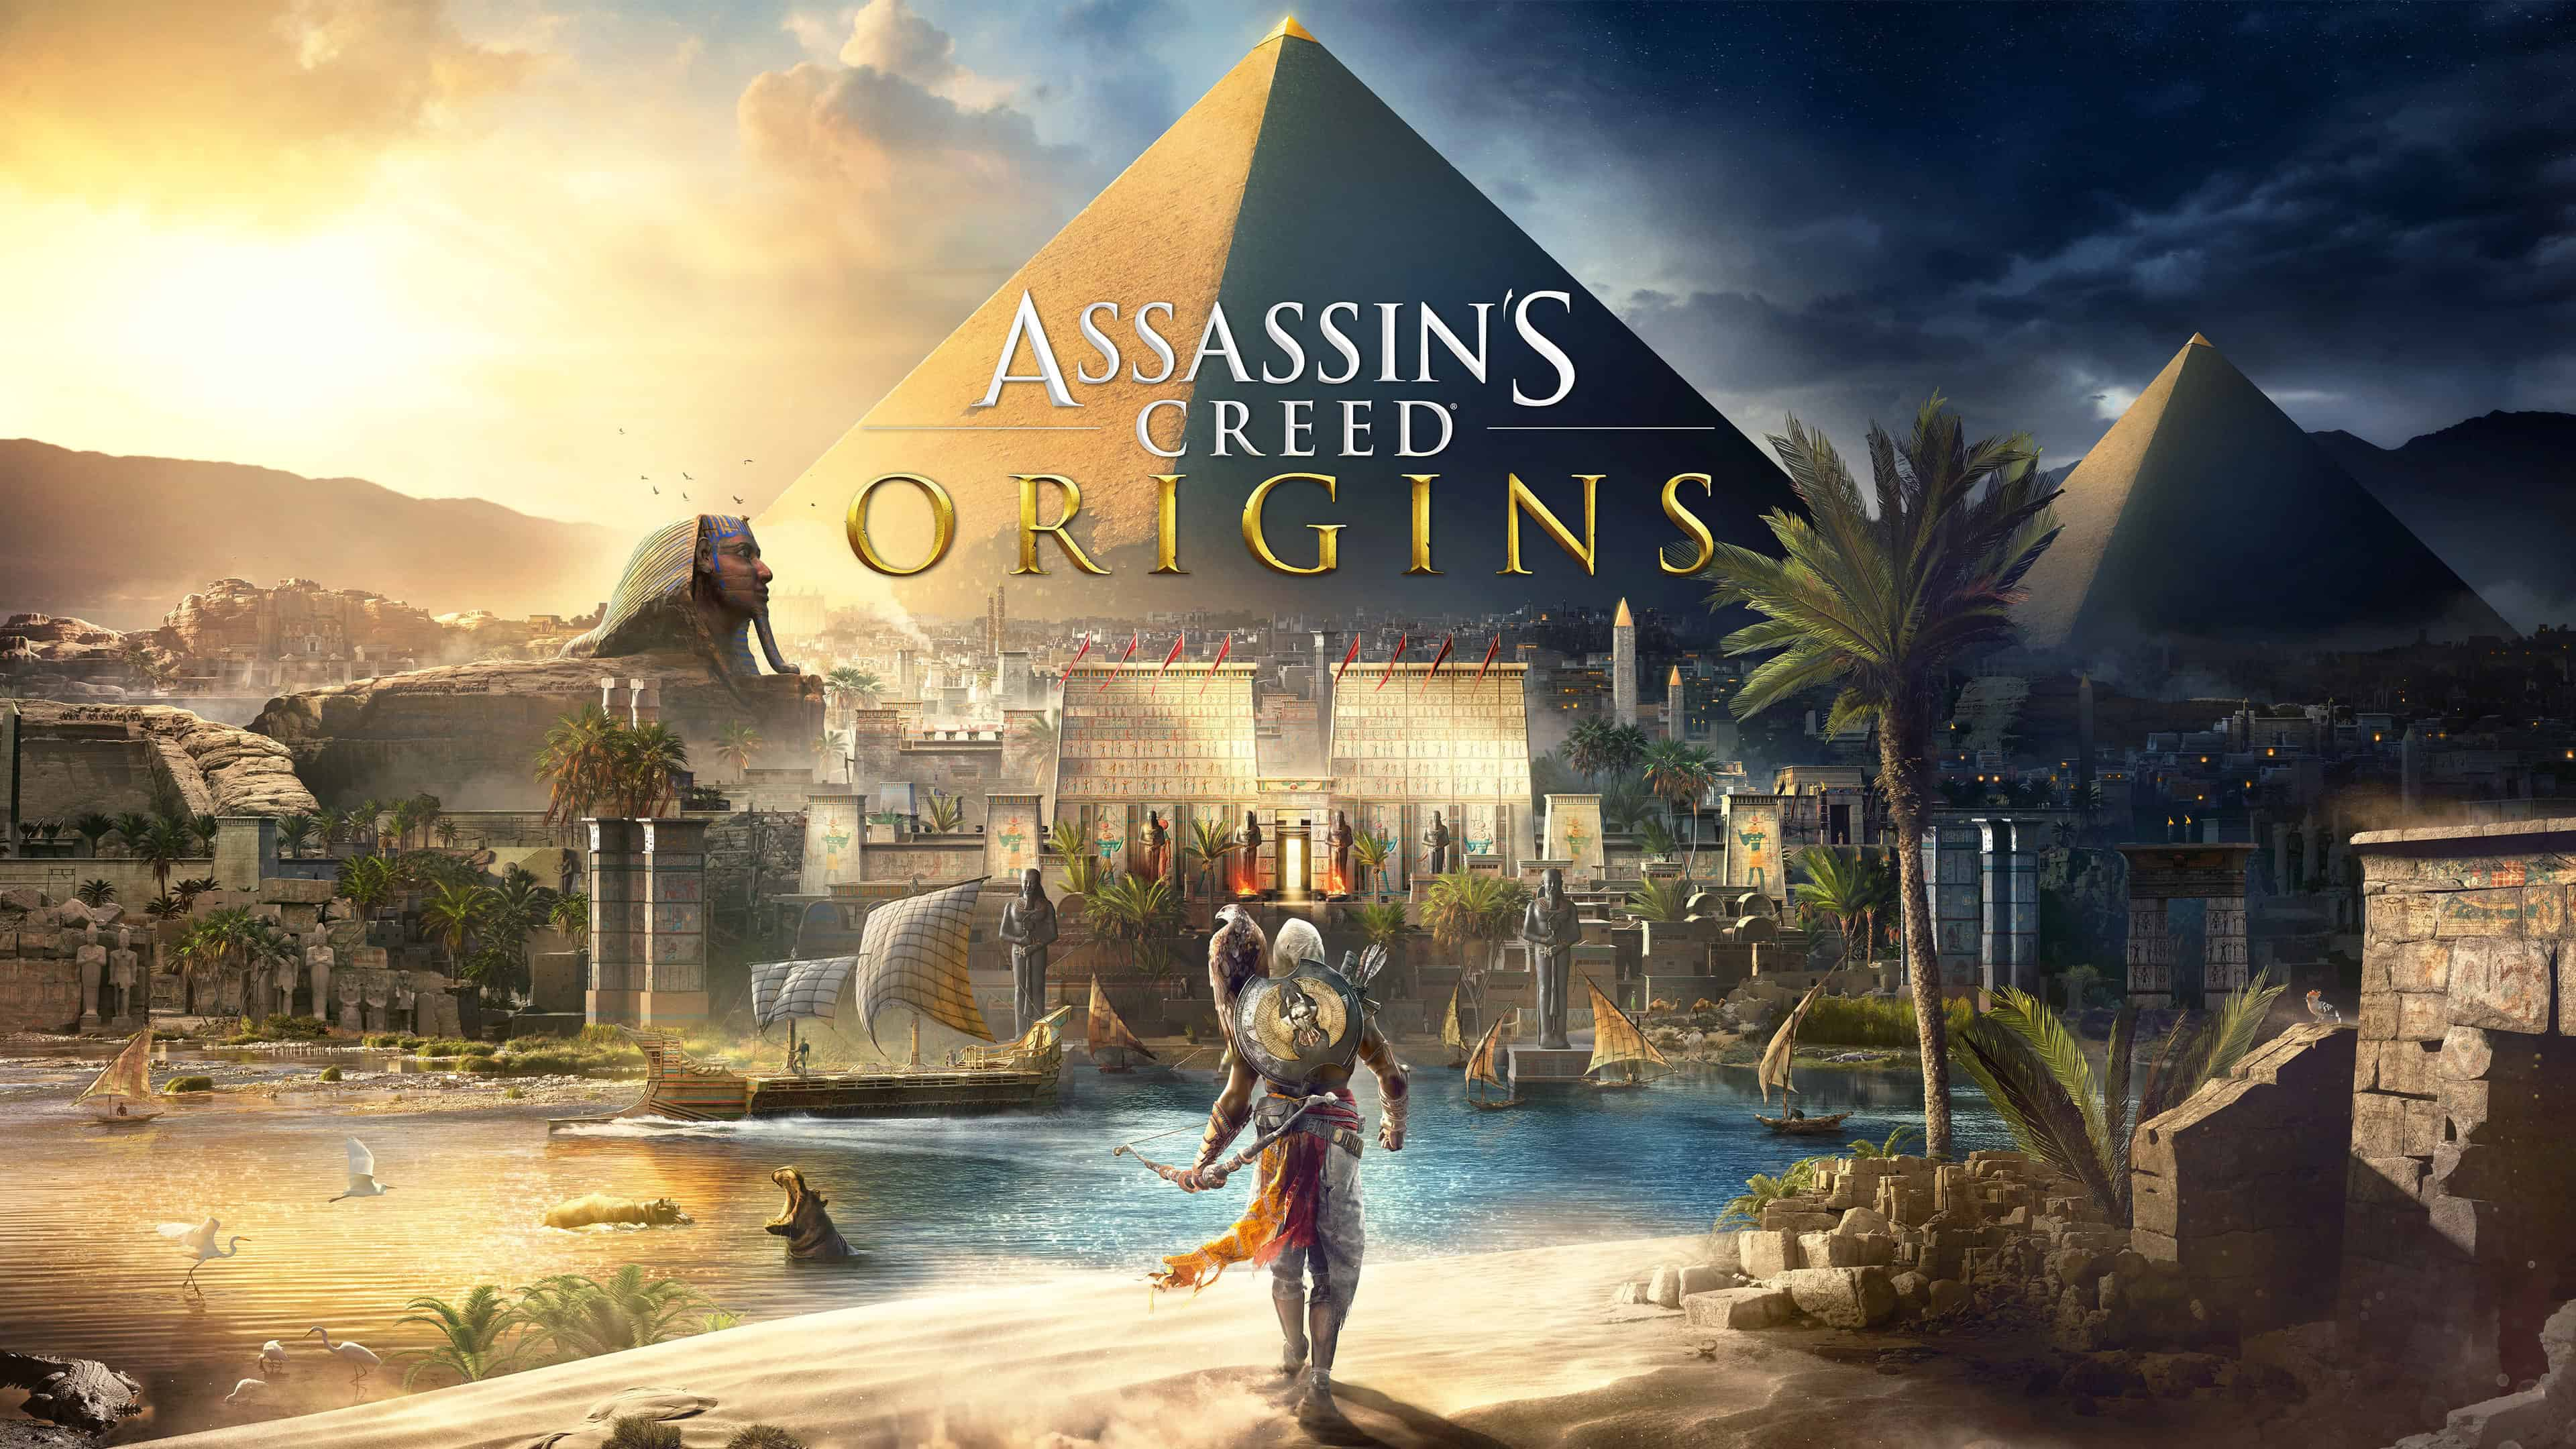 Assassins Creed Origins Uhd 4k Wallpaper Pixelz Cc